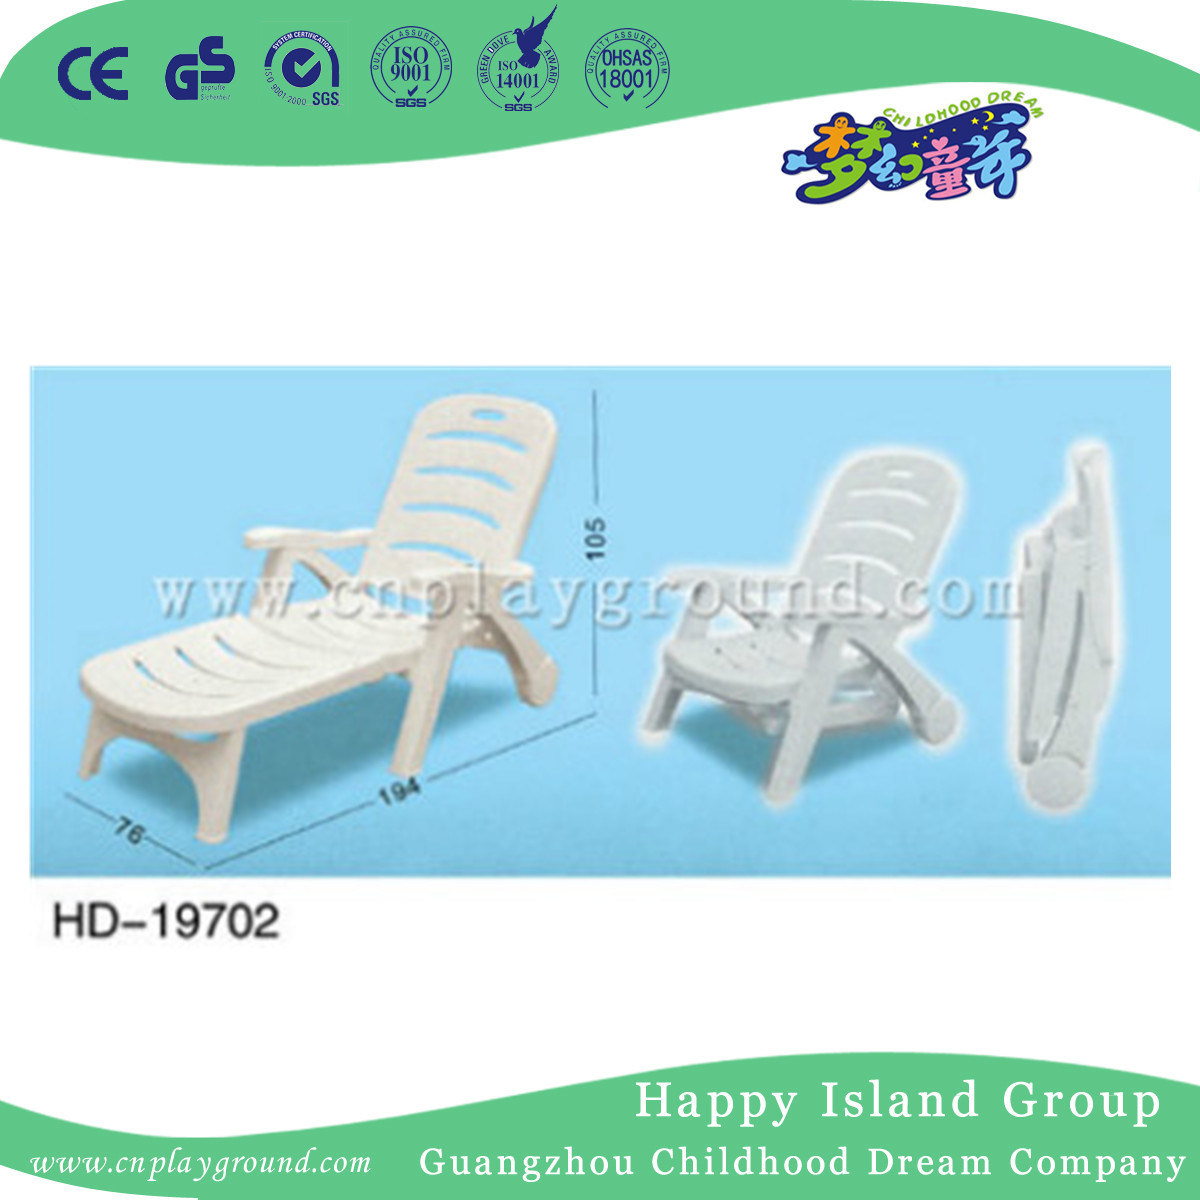 Plastic Lounge Chair Hot Item Cheap Plastic Lounge Chair Beach Chair Hd 19702